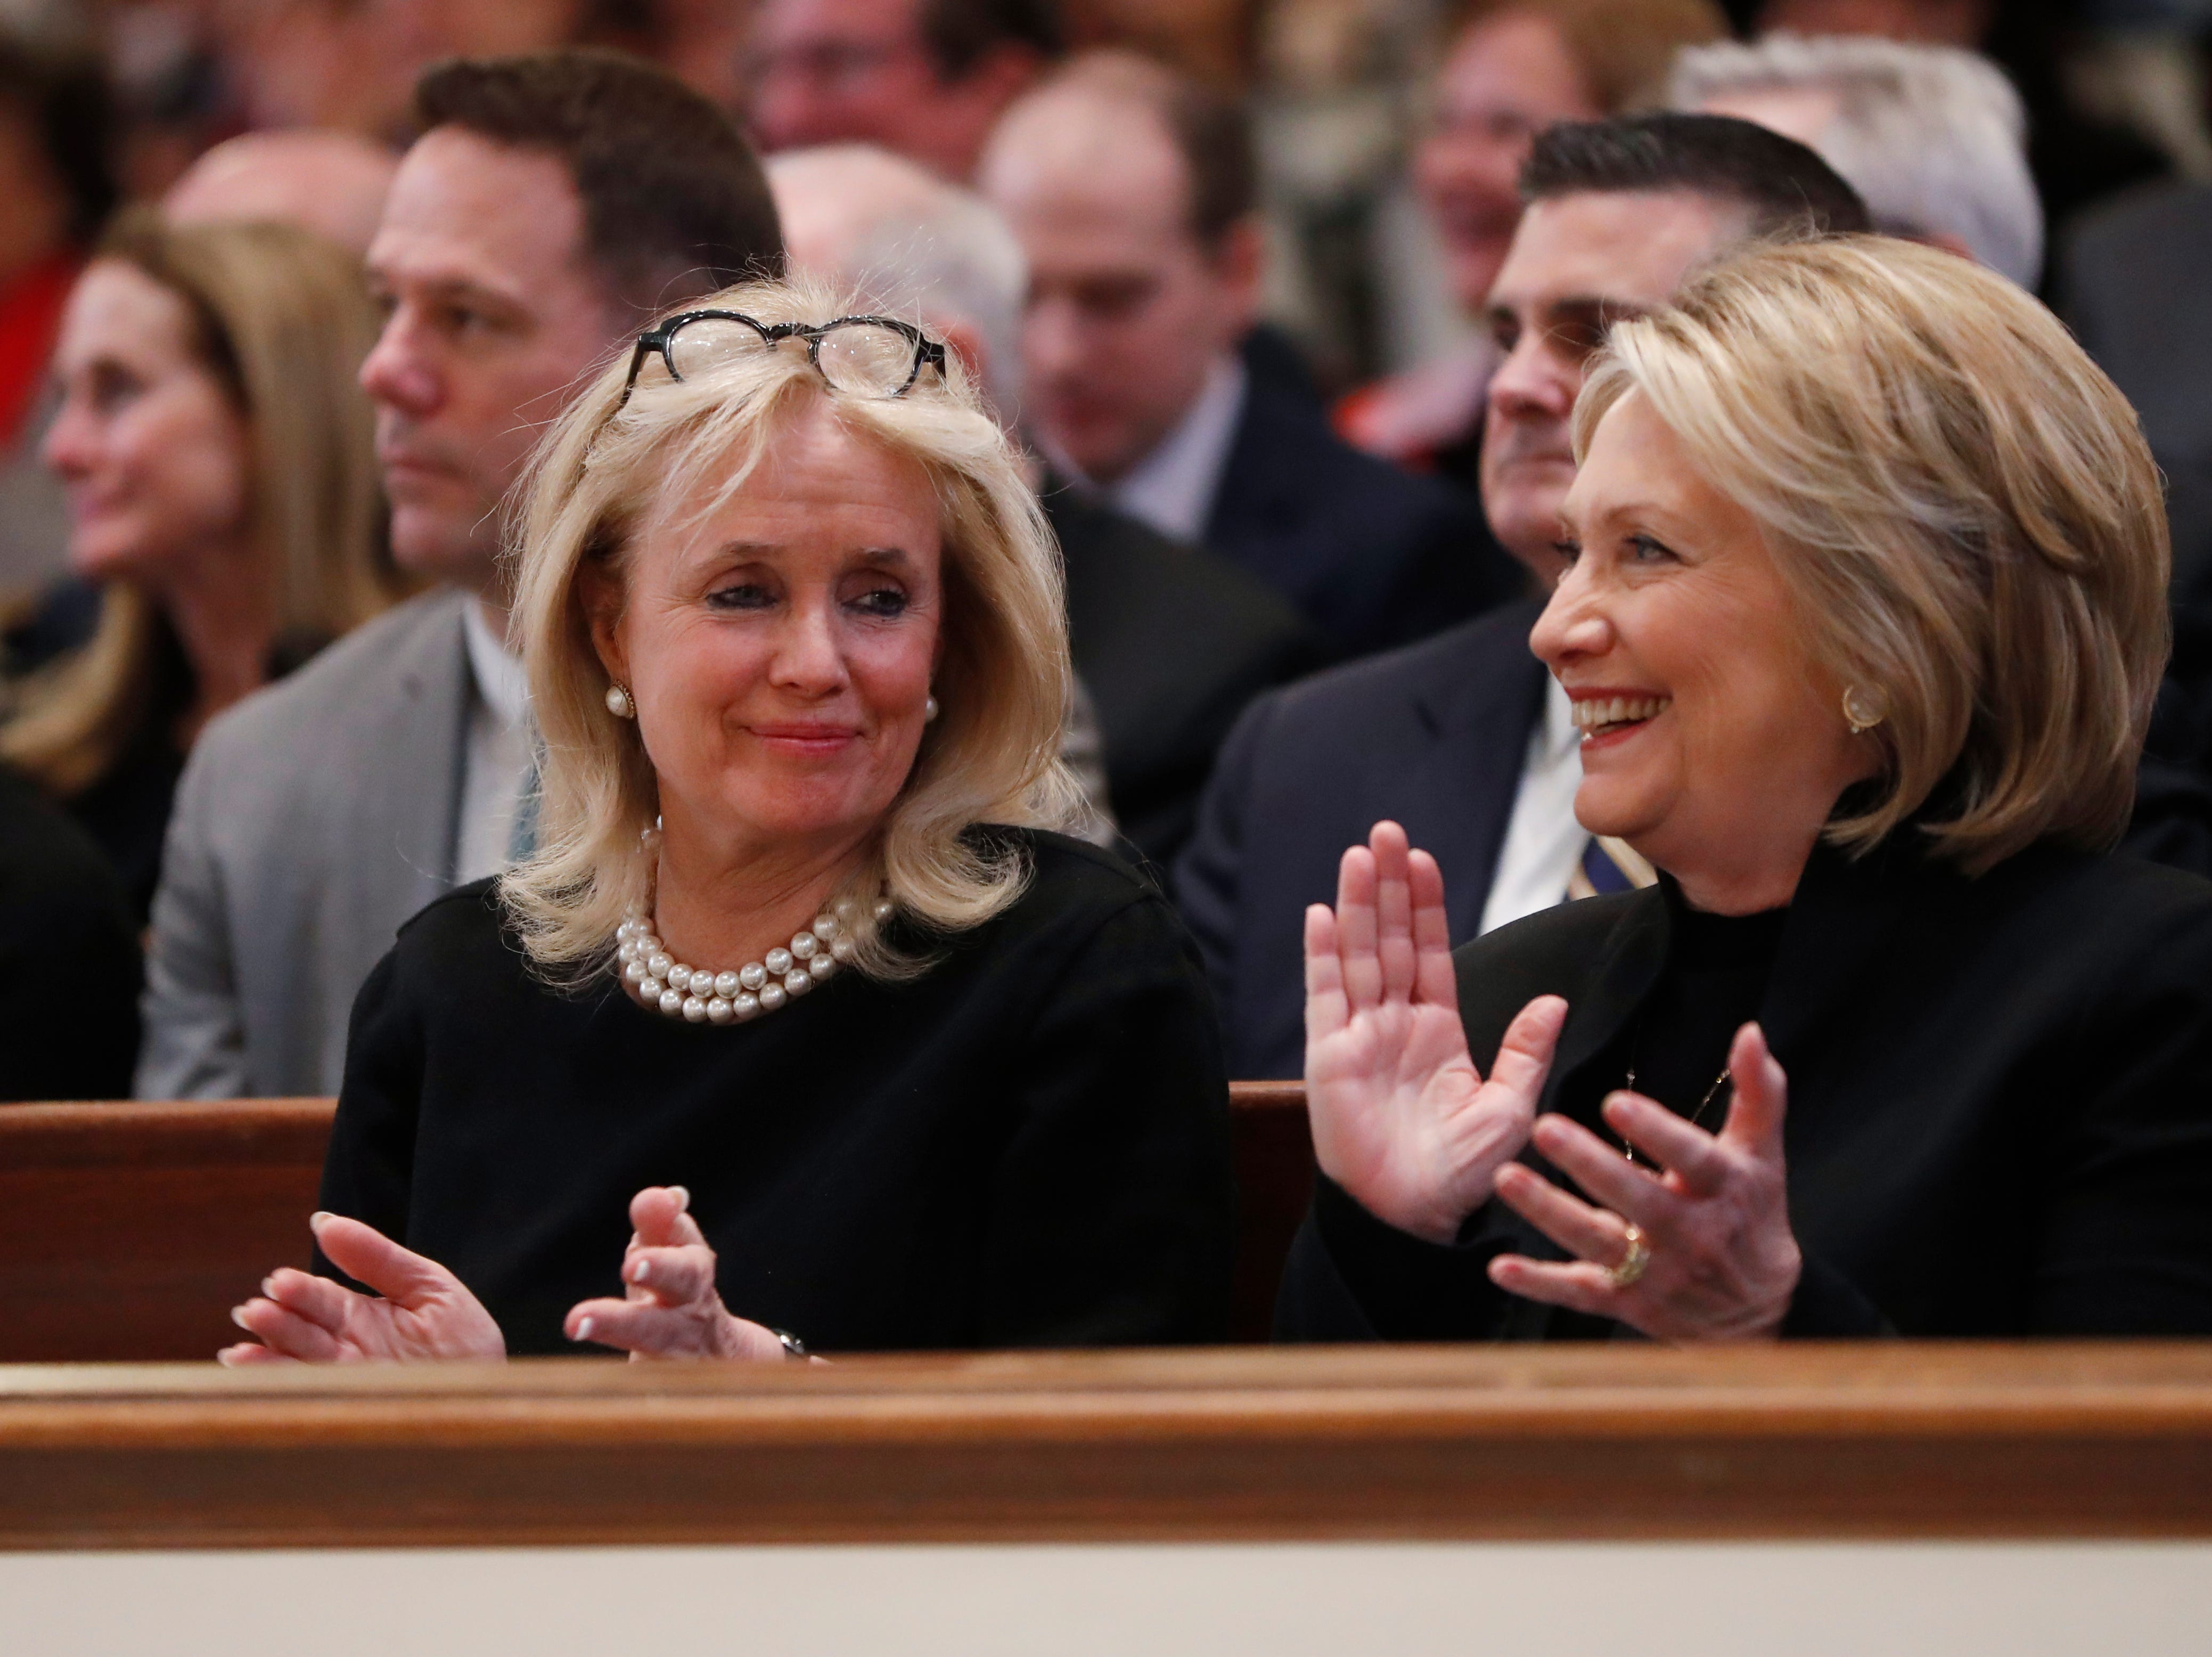 Rep. Debbie Dingell, D-Dearborn, left, talks with former Secretary of State Hillary Clinton, during the service for her husband, former Rep. John Dingell.